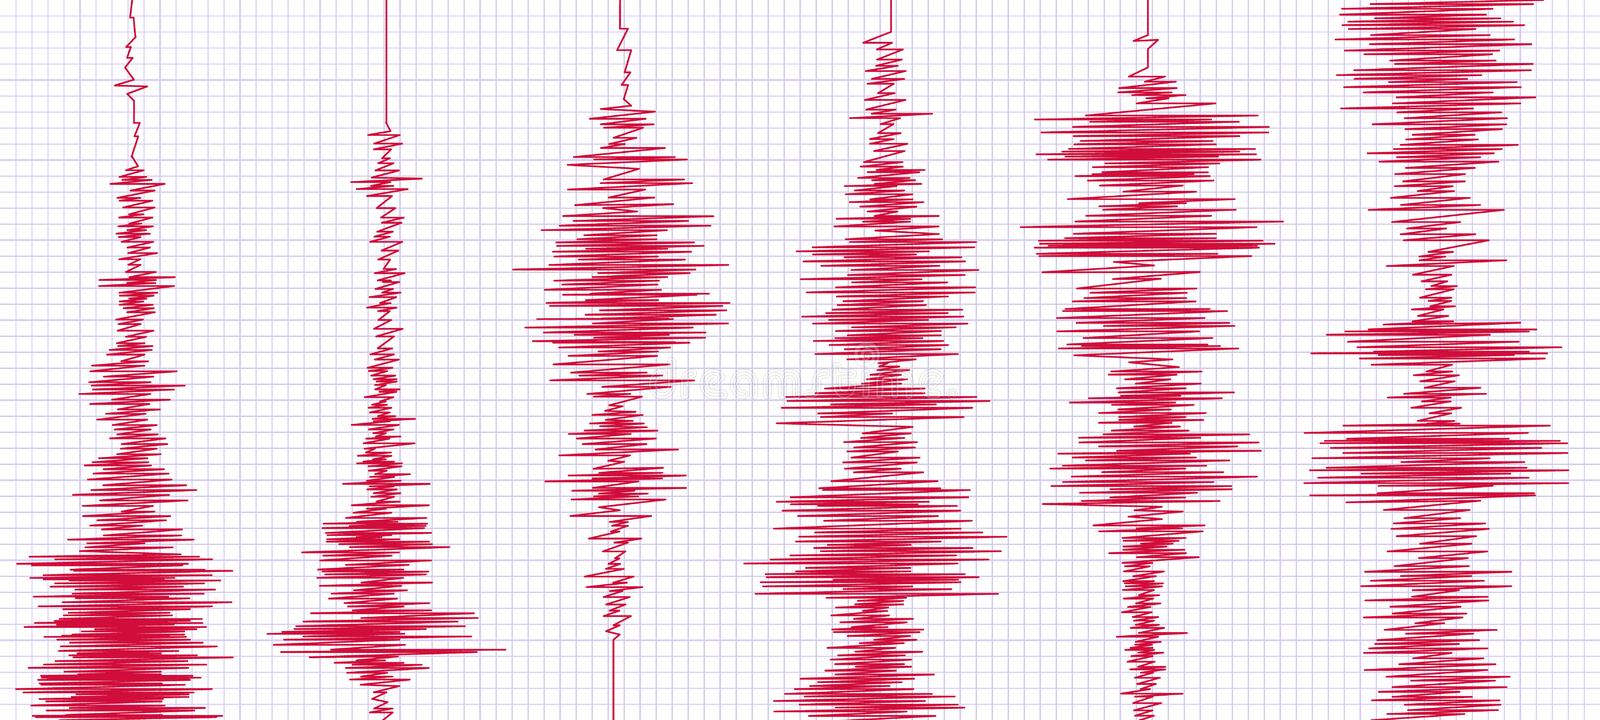 Seismogram earthquake graph. Oscilloscope waves, seismograms waveform and seismic activity graphs vector illustration royalty free illustration